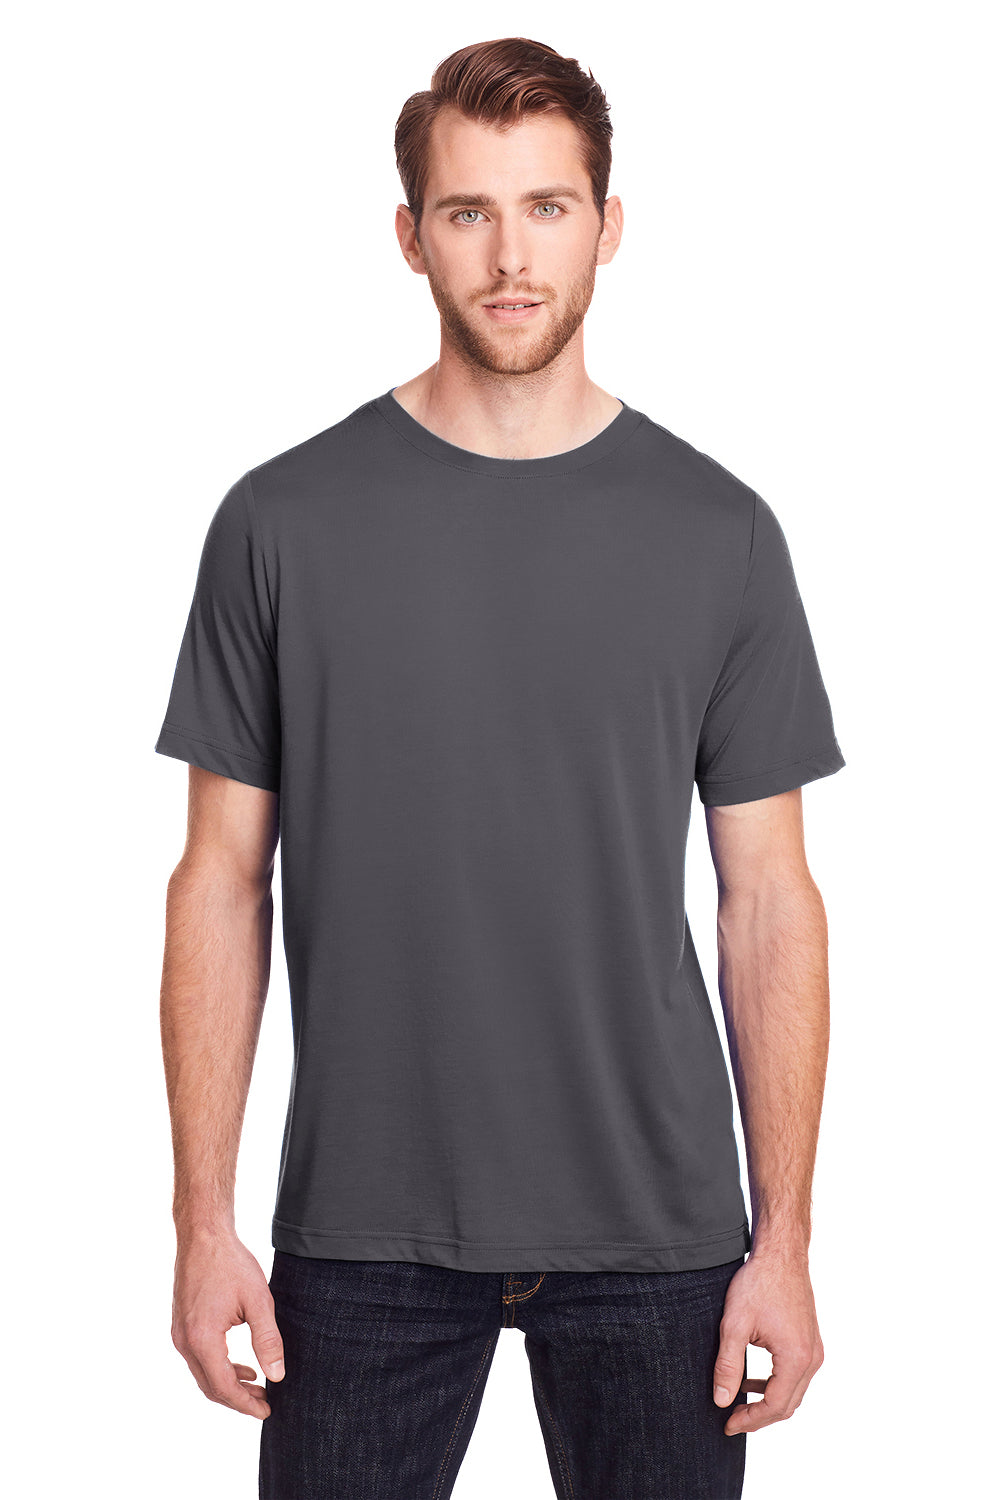 Core 365 CE111 Mens Fusion ChromaSoft Performance Moisture Wicking Short Sleeve Crewneck T-Shirt Carbon Grey Front